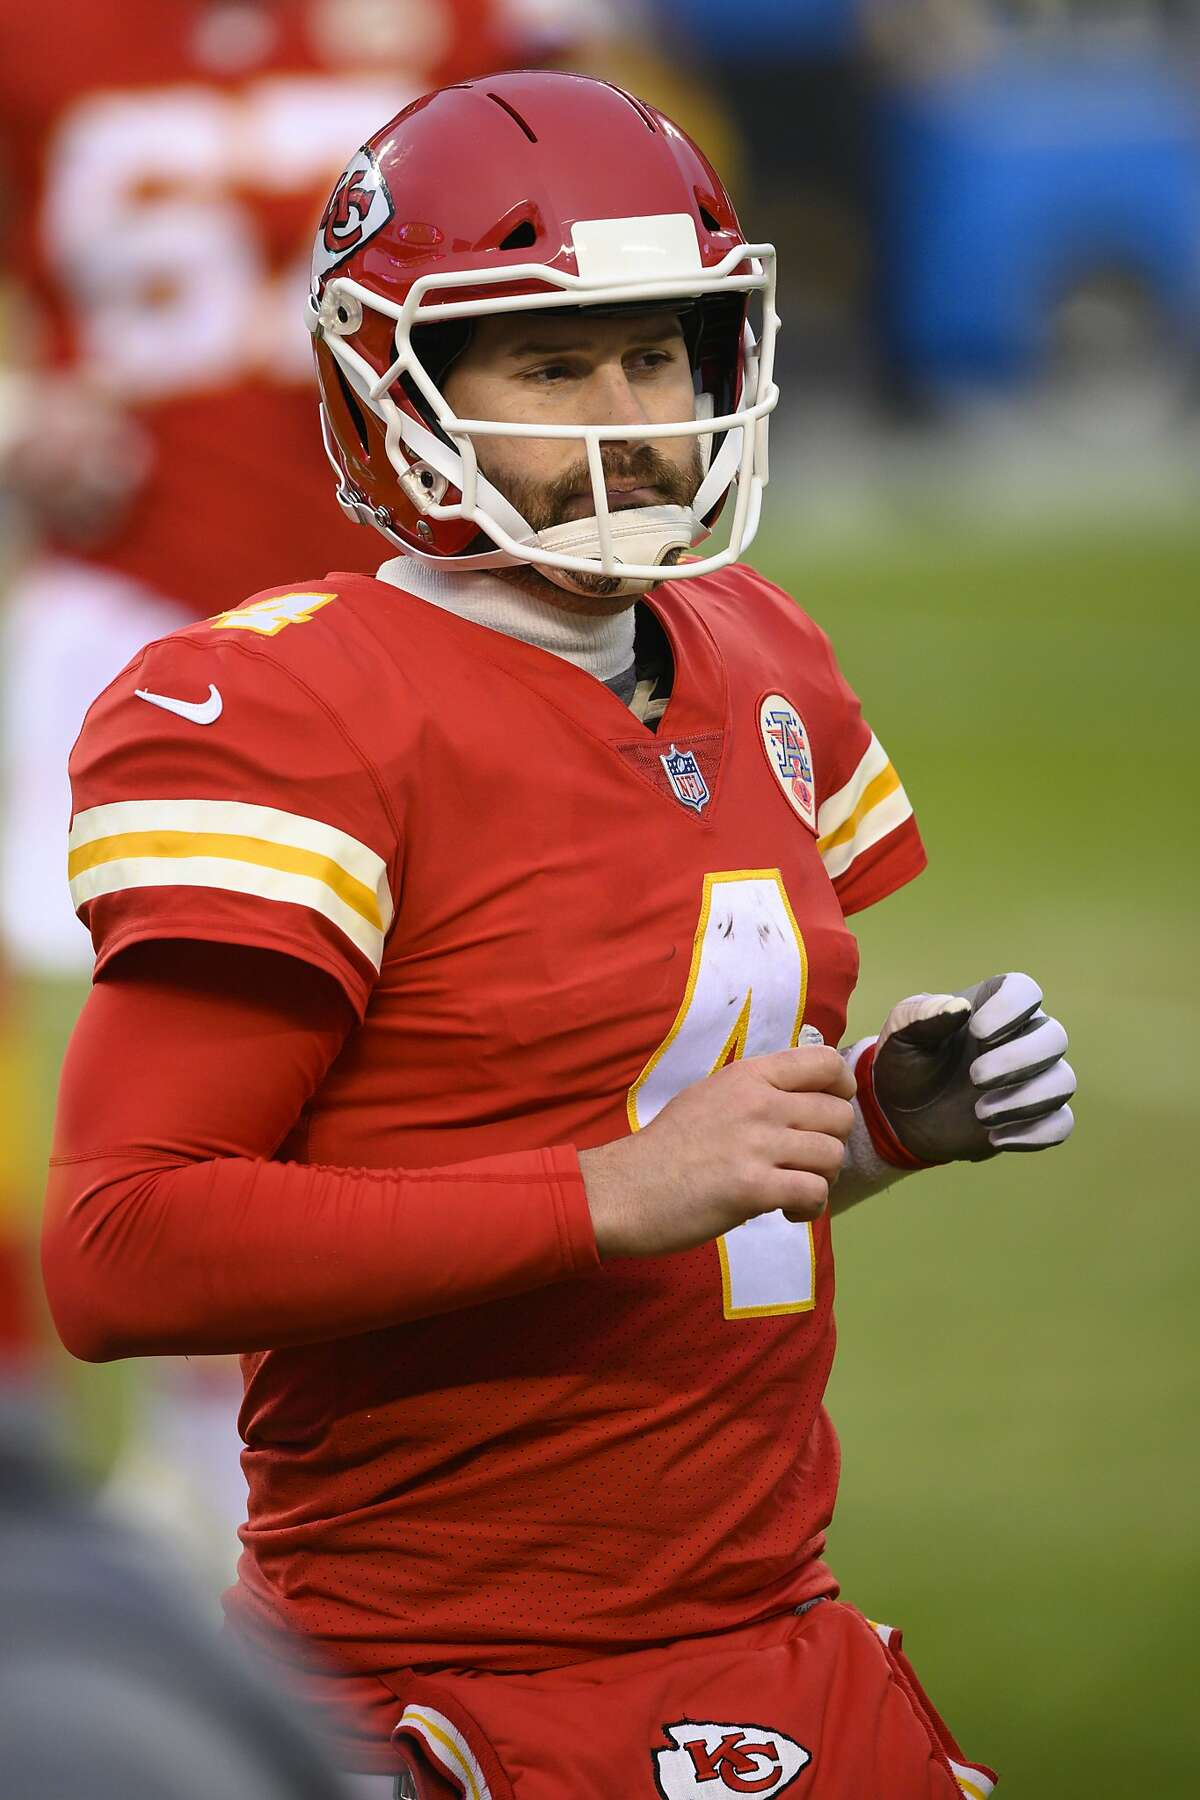 Chad Henne, 35, will make his first playoff start if K.C. QB Patrick Mahomes can't go.